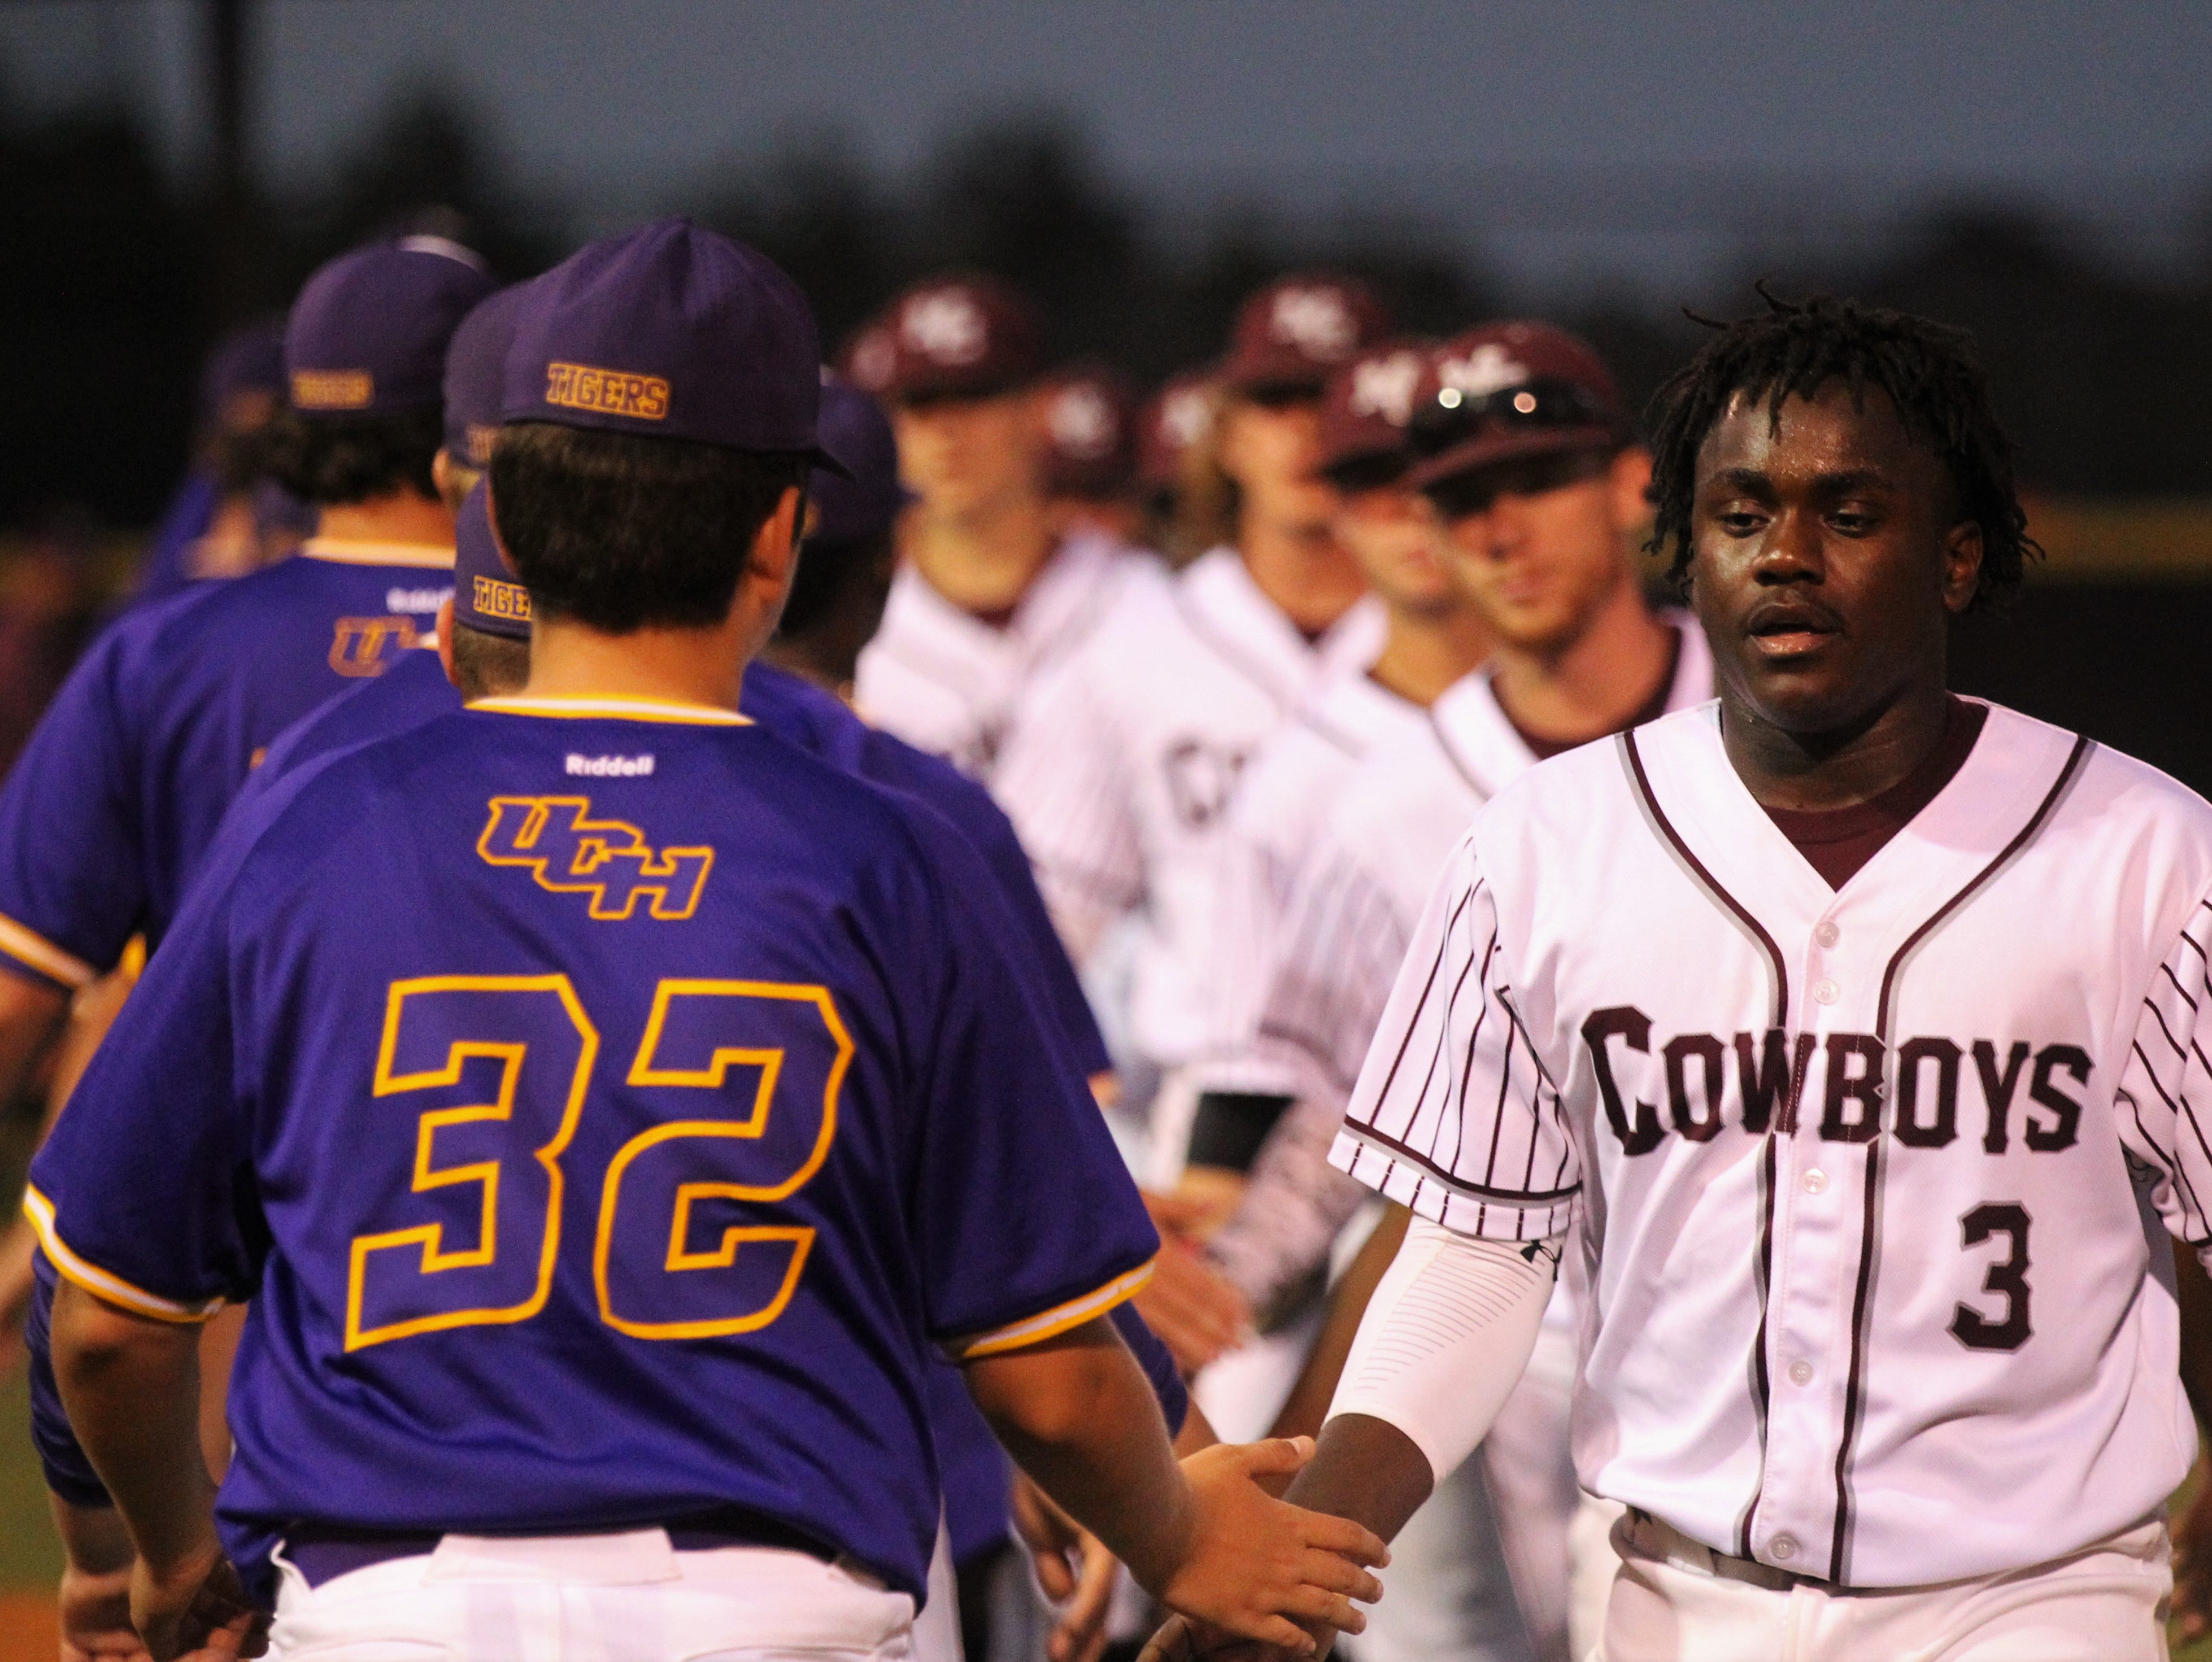 Madison County senior Daquarius Thompkins leads a postgame handshake as the Cowboys beat Union County 1-0 during a Region 2-1A semifinal on May 14, 2019. The Cowboys played for former player Trey Mitchell, who died in a drowning accident last week.